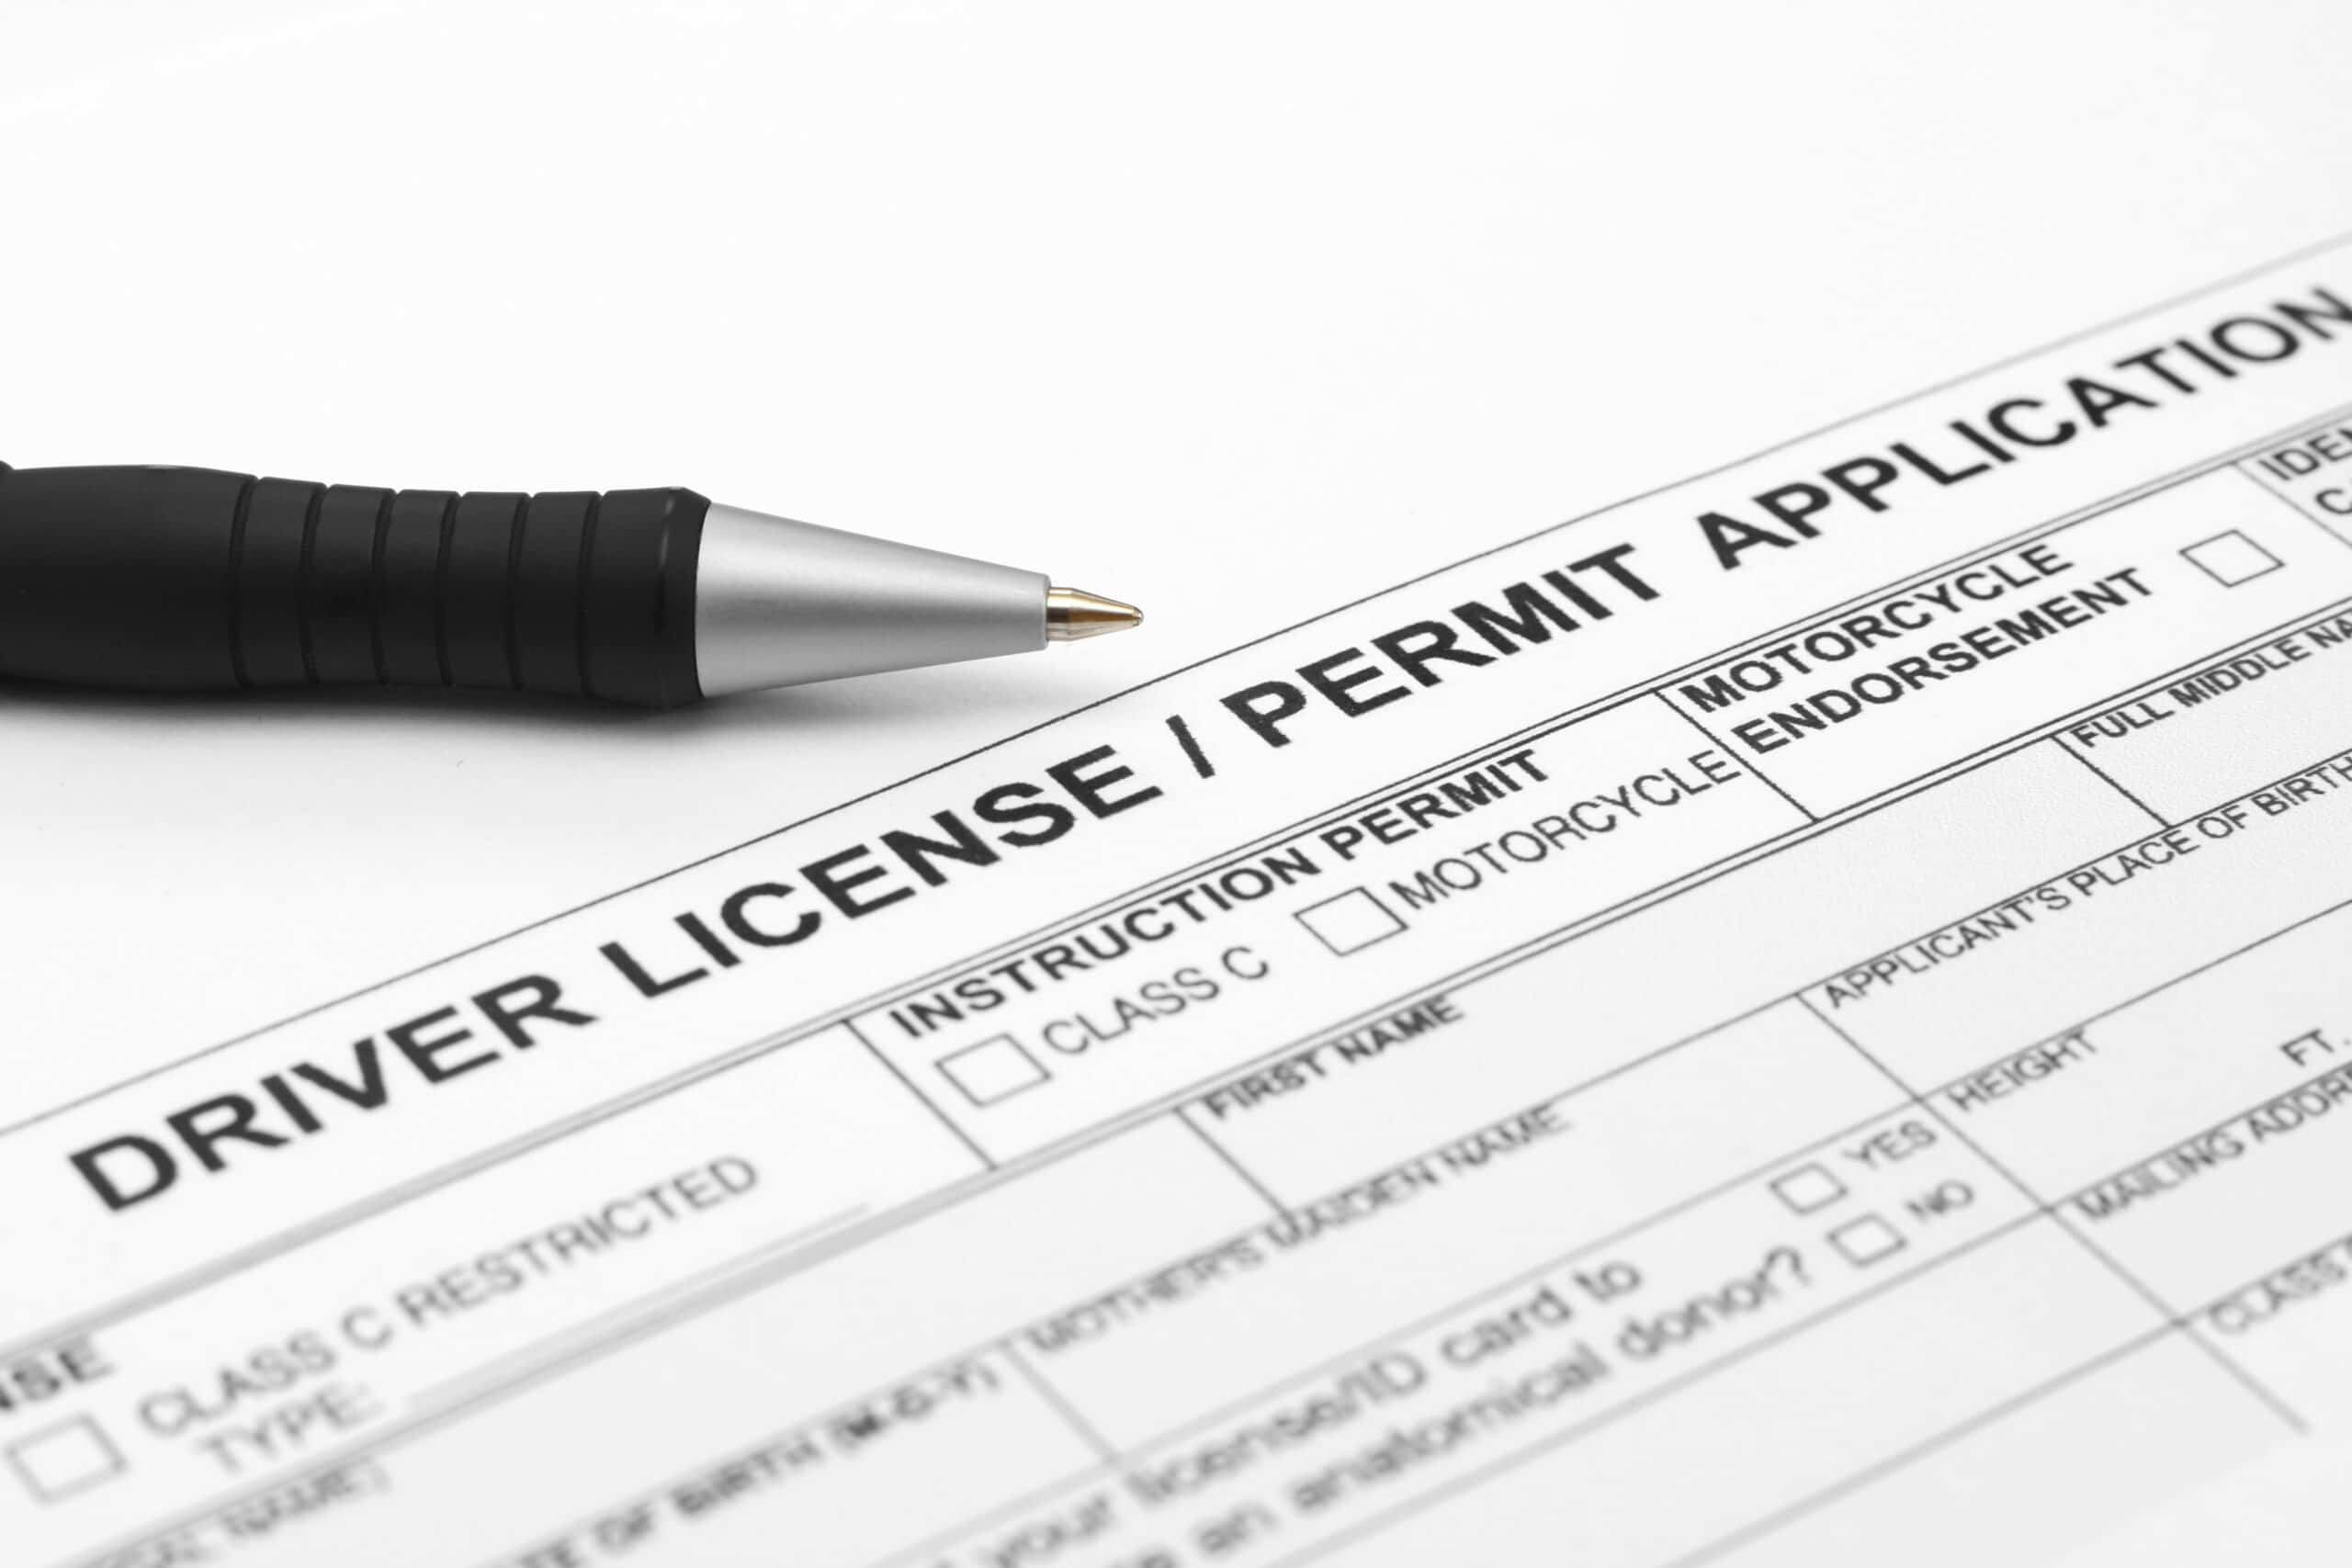 Driver license Attorney Kansas City, Drivers License Was Used by Someone Else